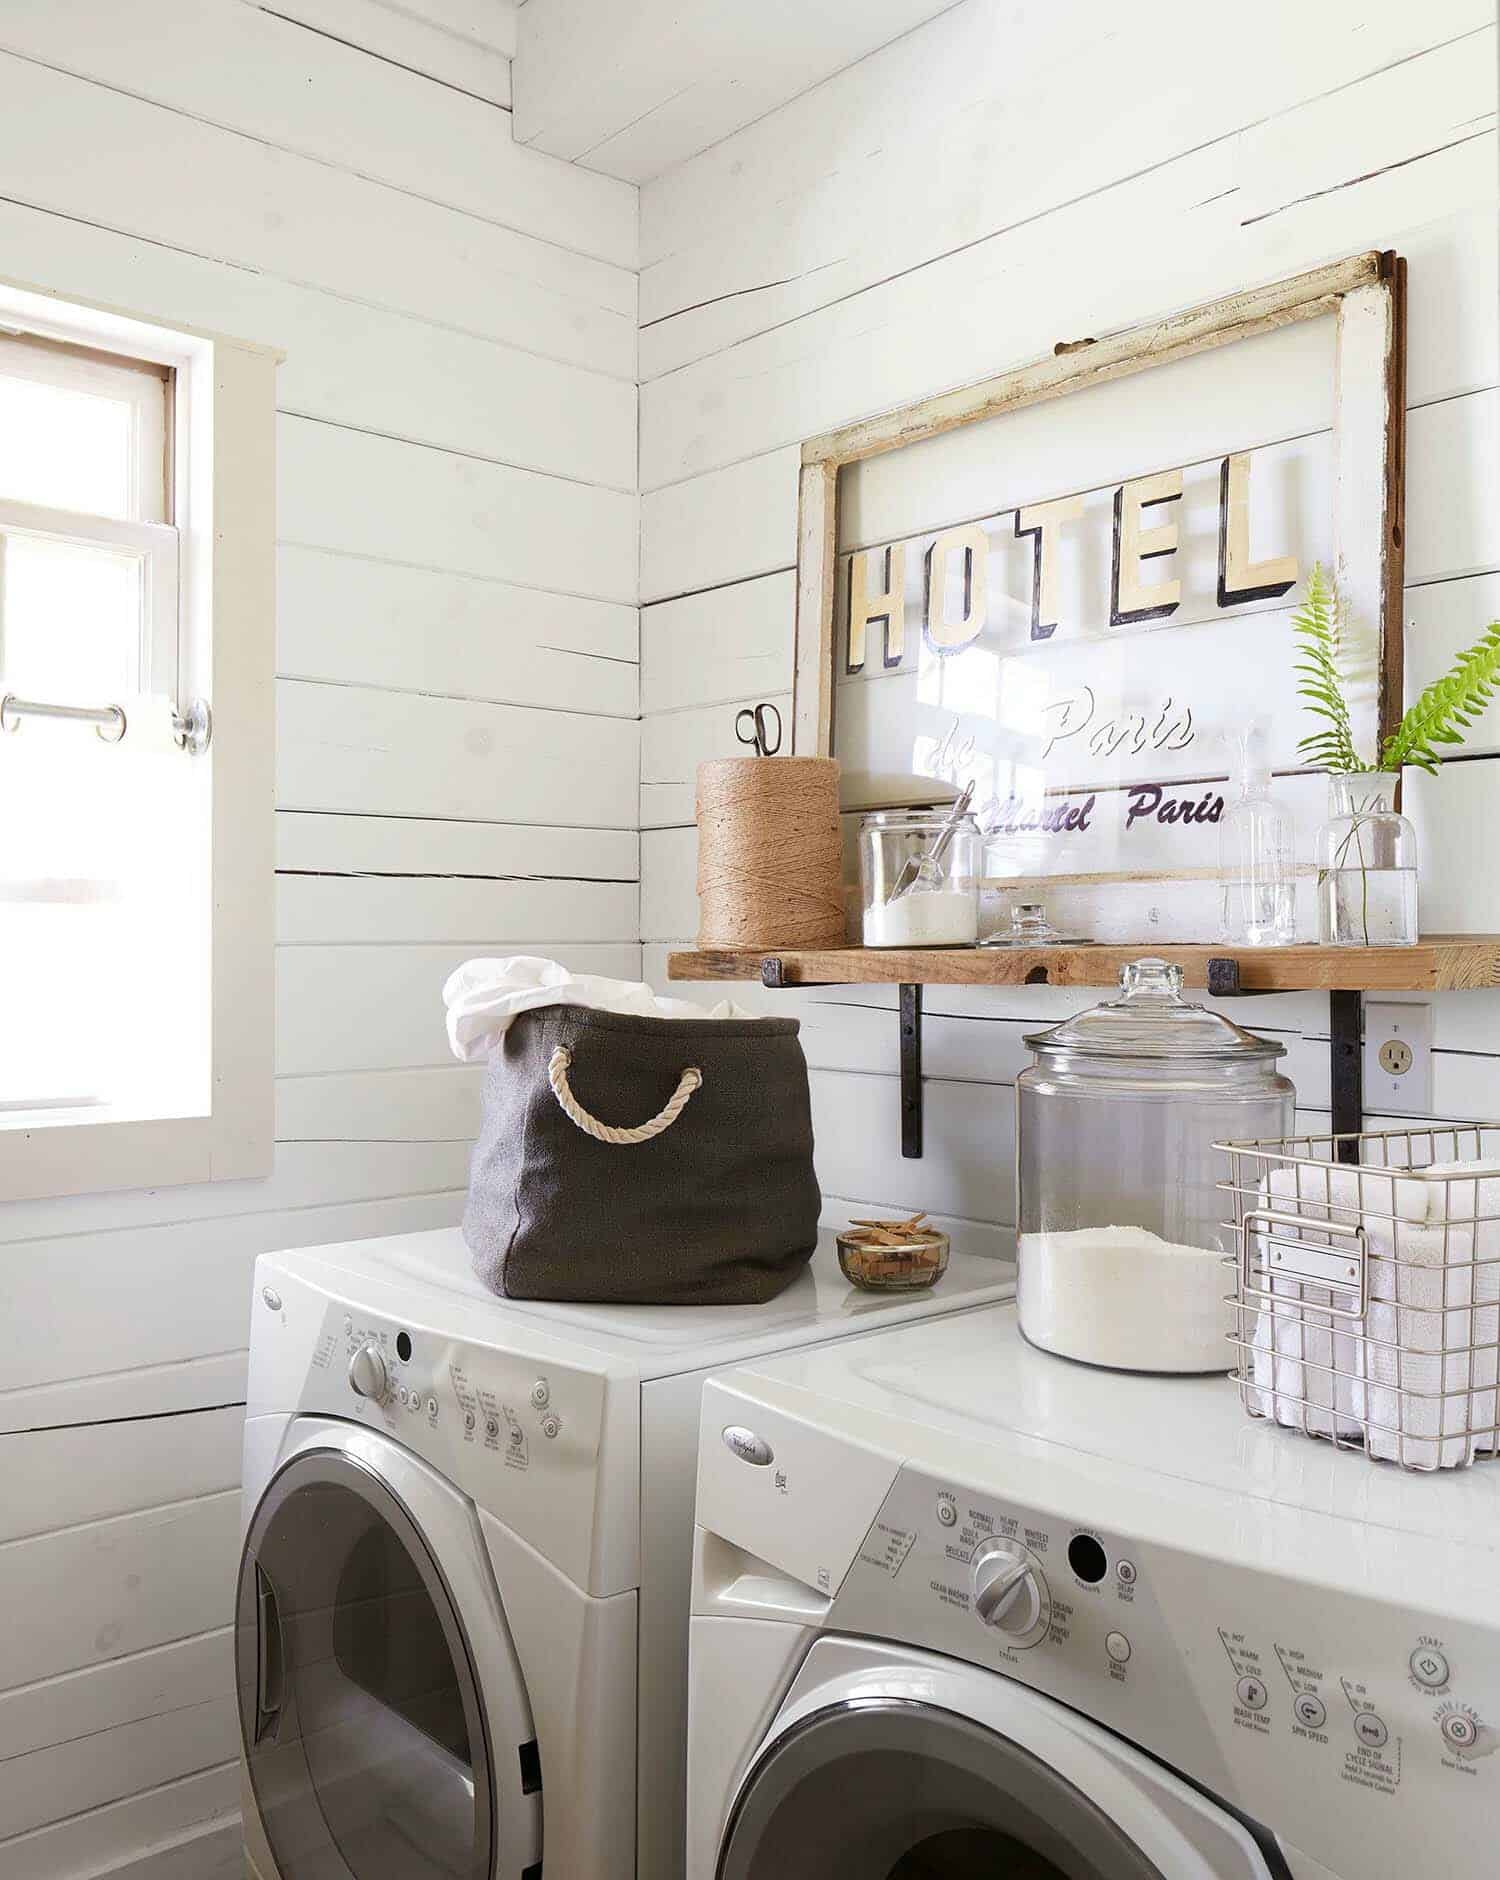 30 unbelievably inspiring farmhouse style laundry room ideas - Laundry room design ideas ...